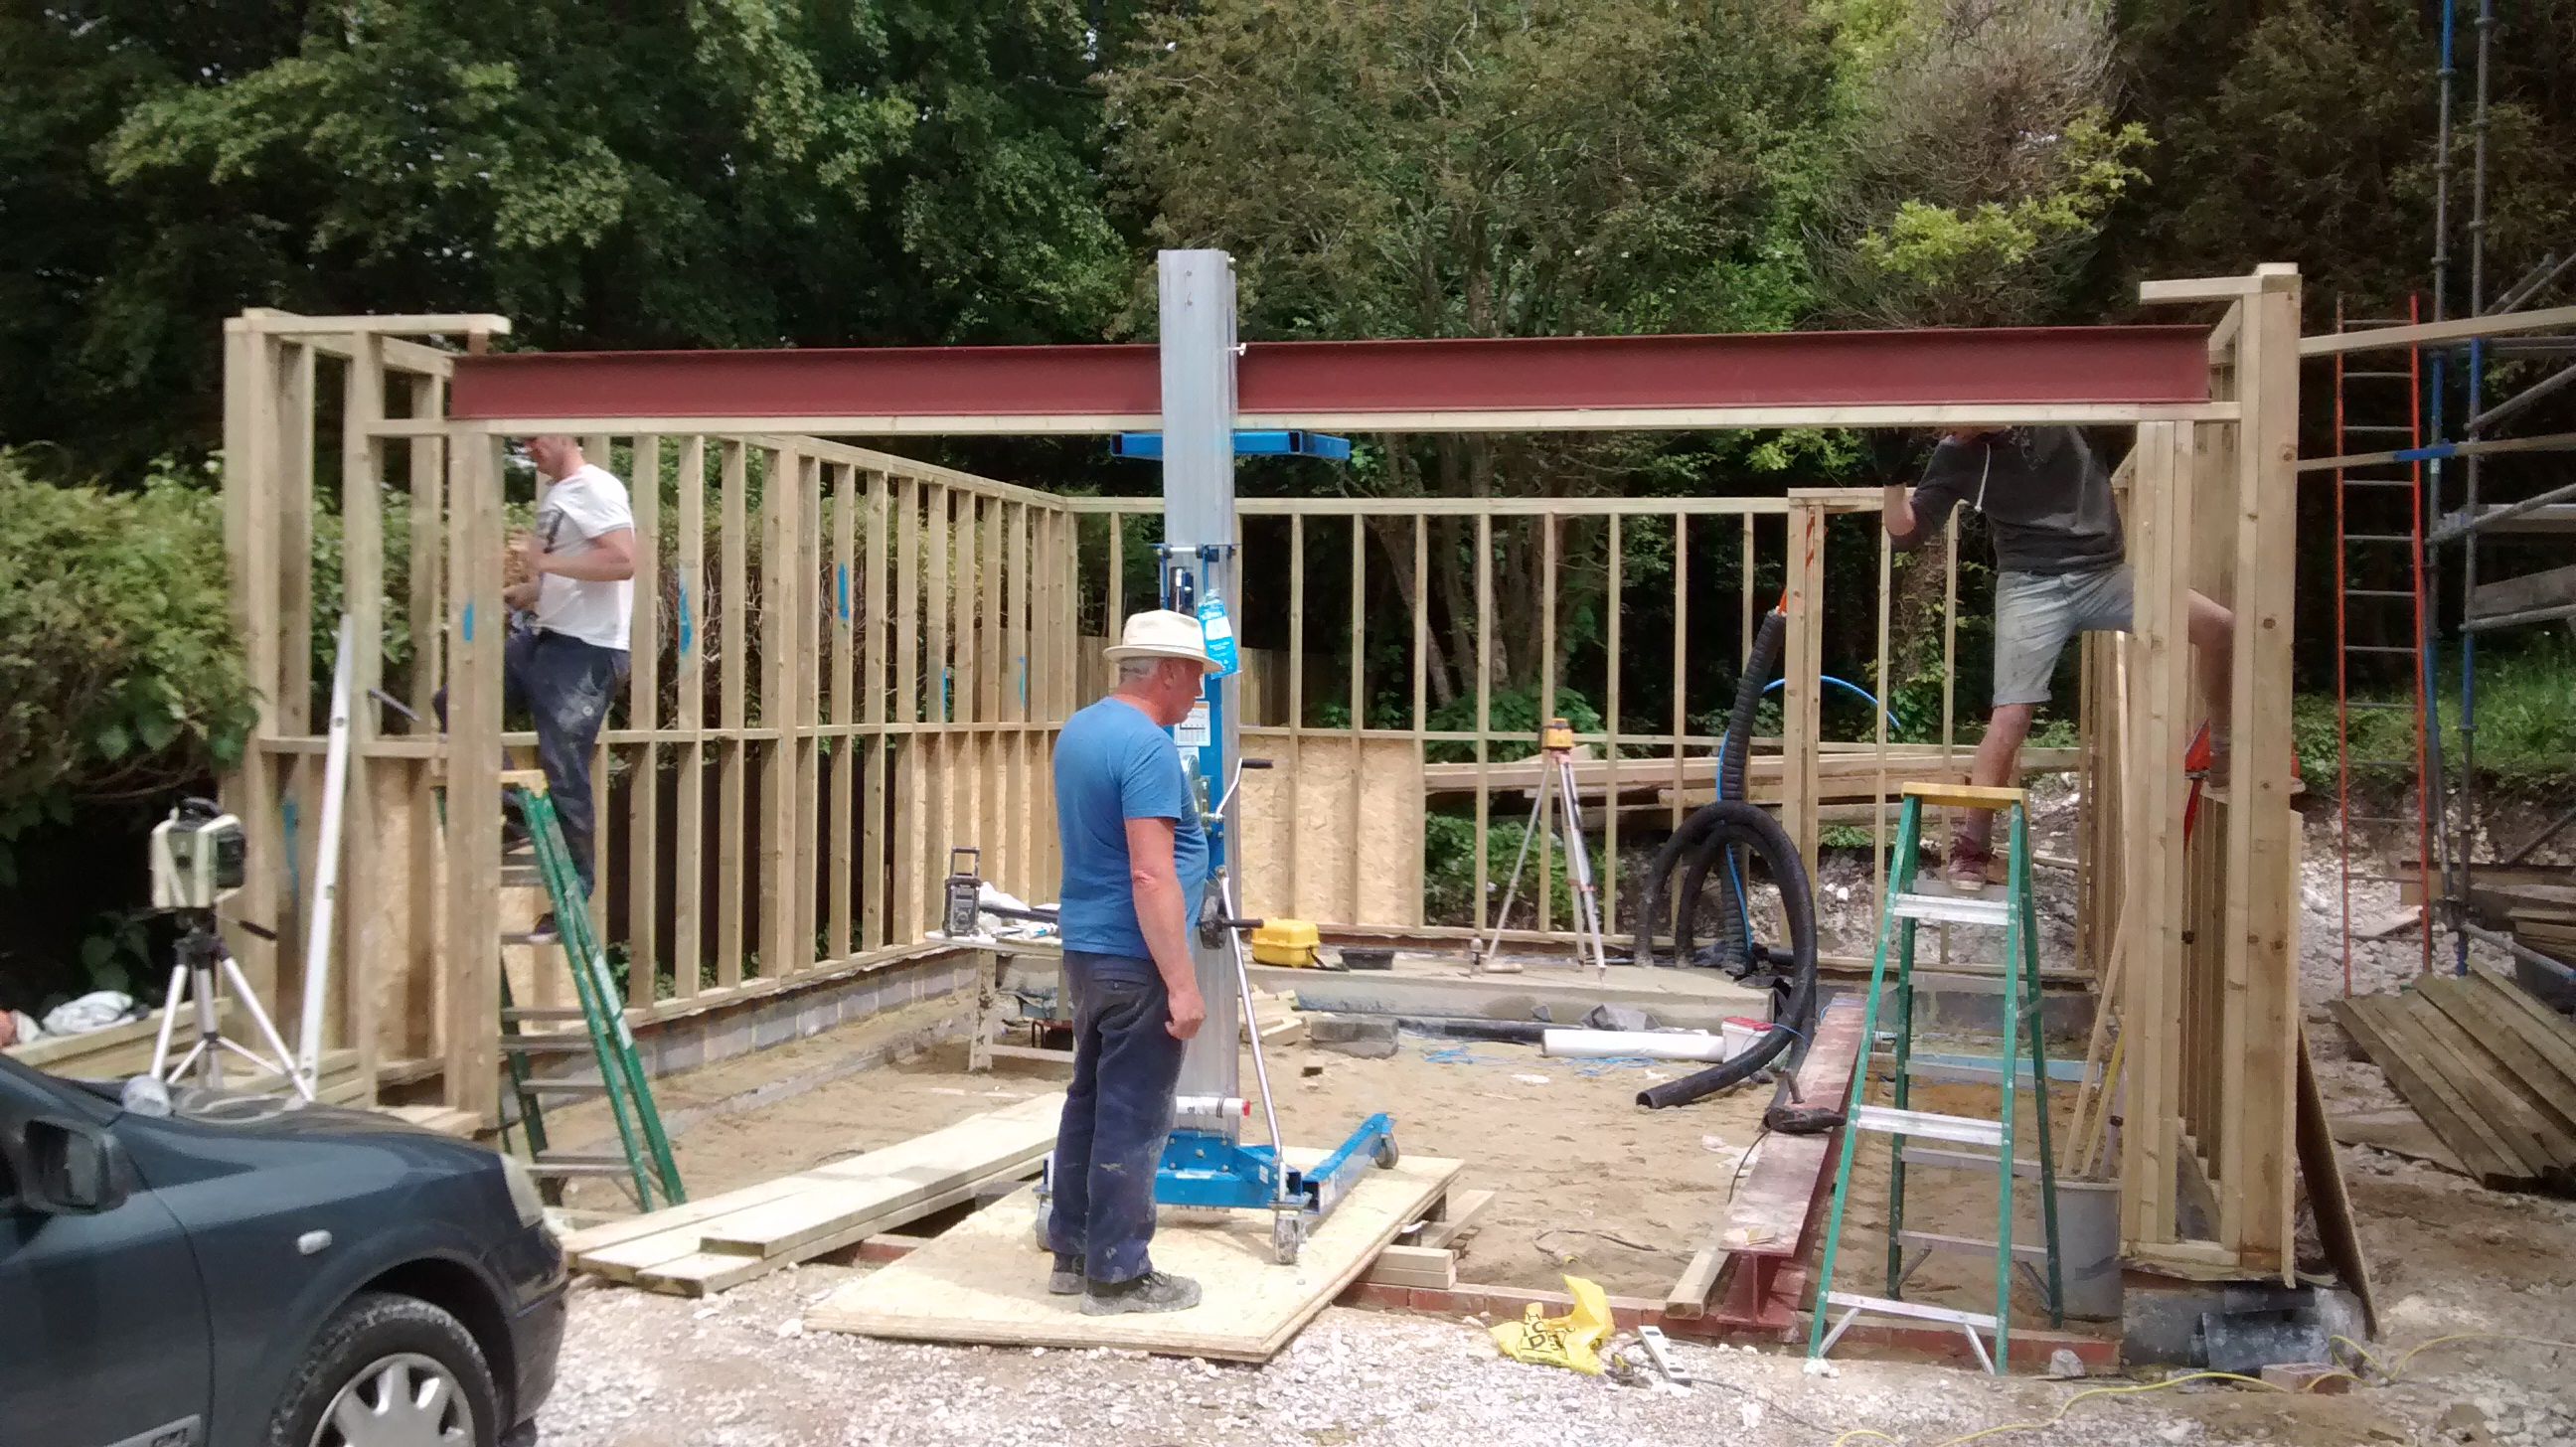 First Steel Beam In Place On New Garage Sky House Sussex